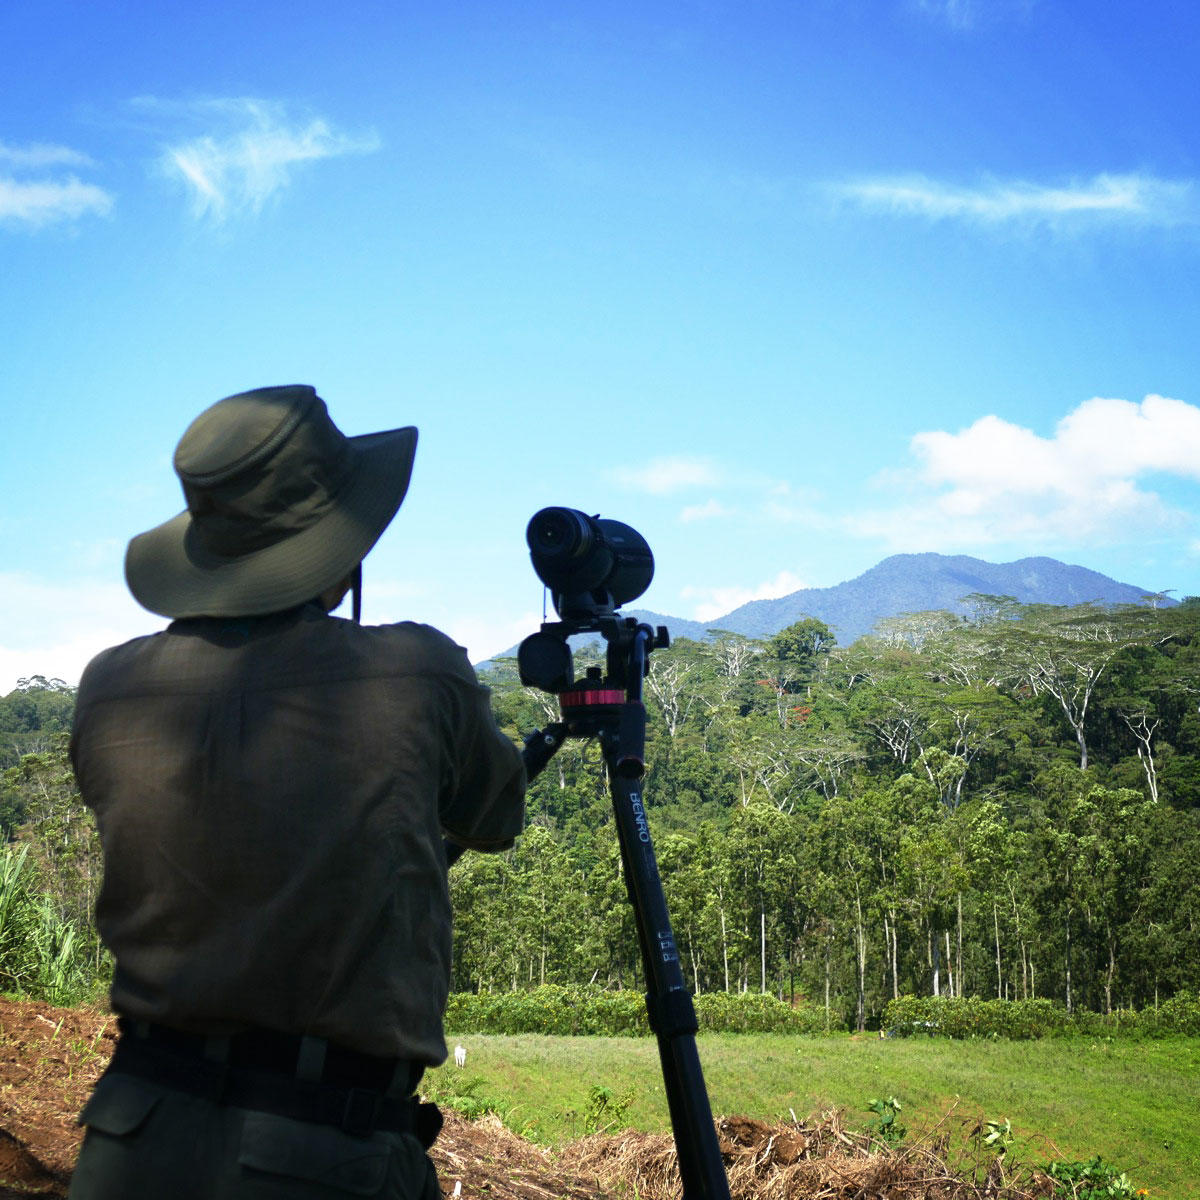 Searching for the Philippine Eagle. Noah Strycker